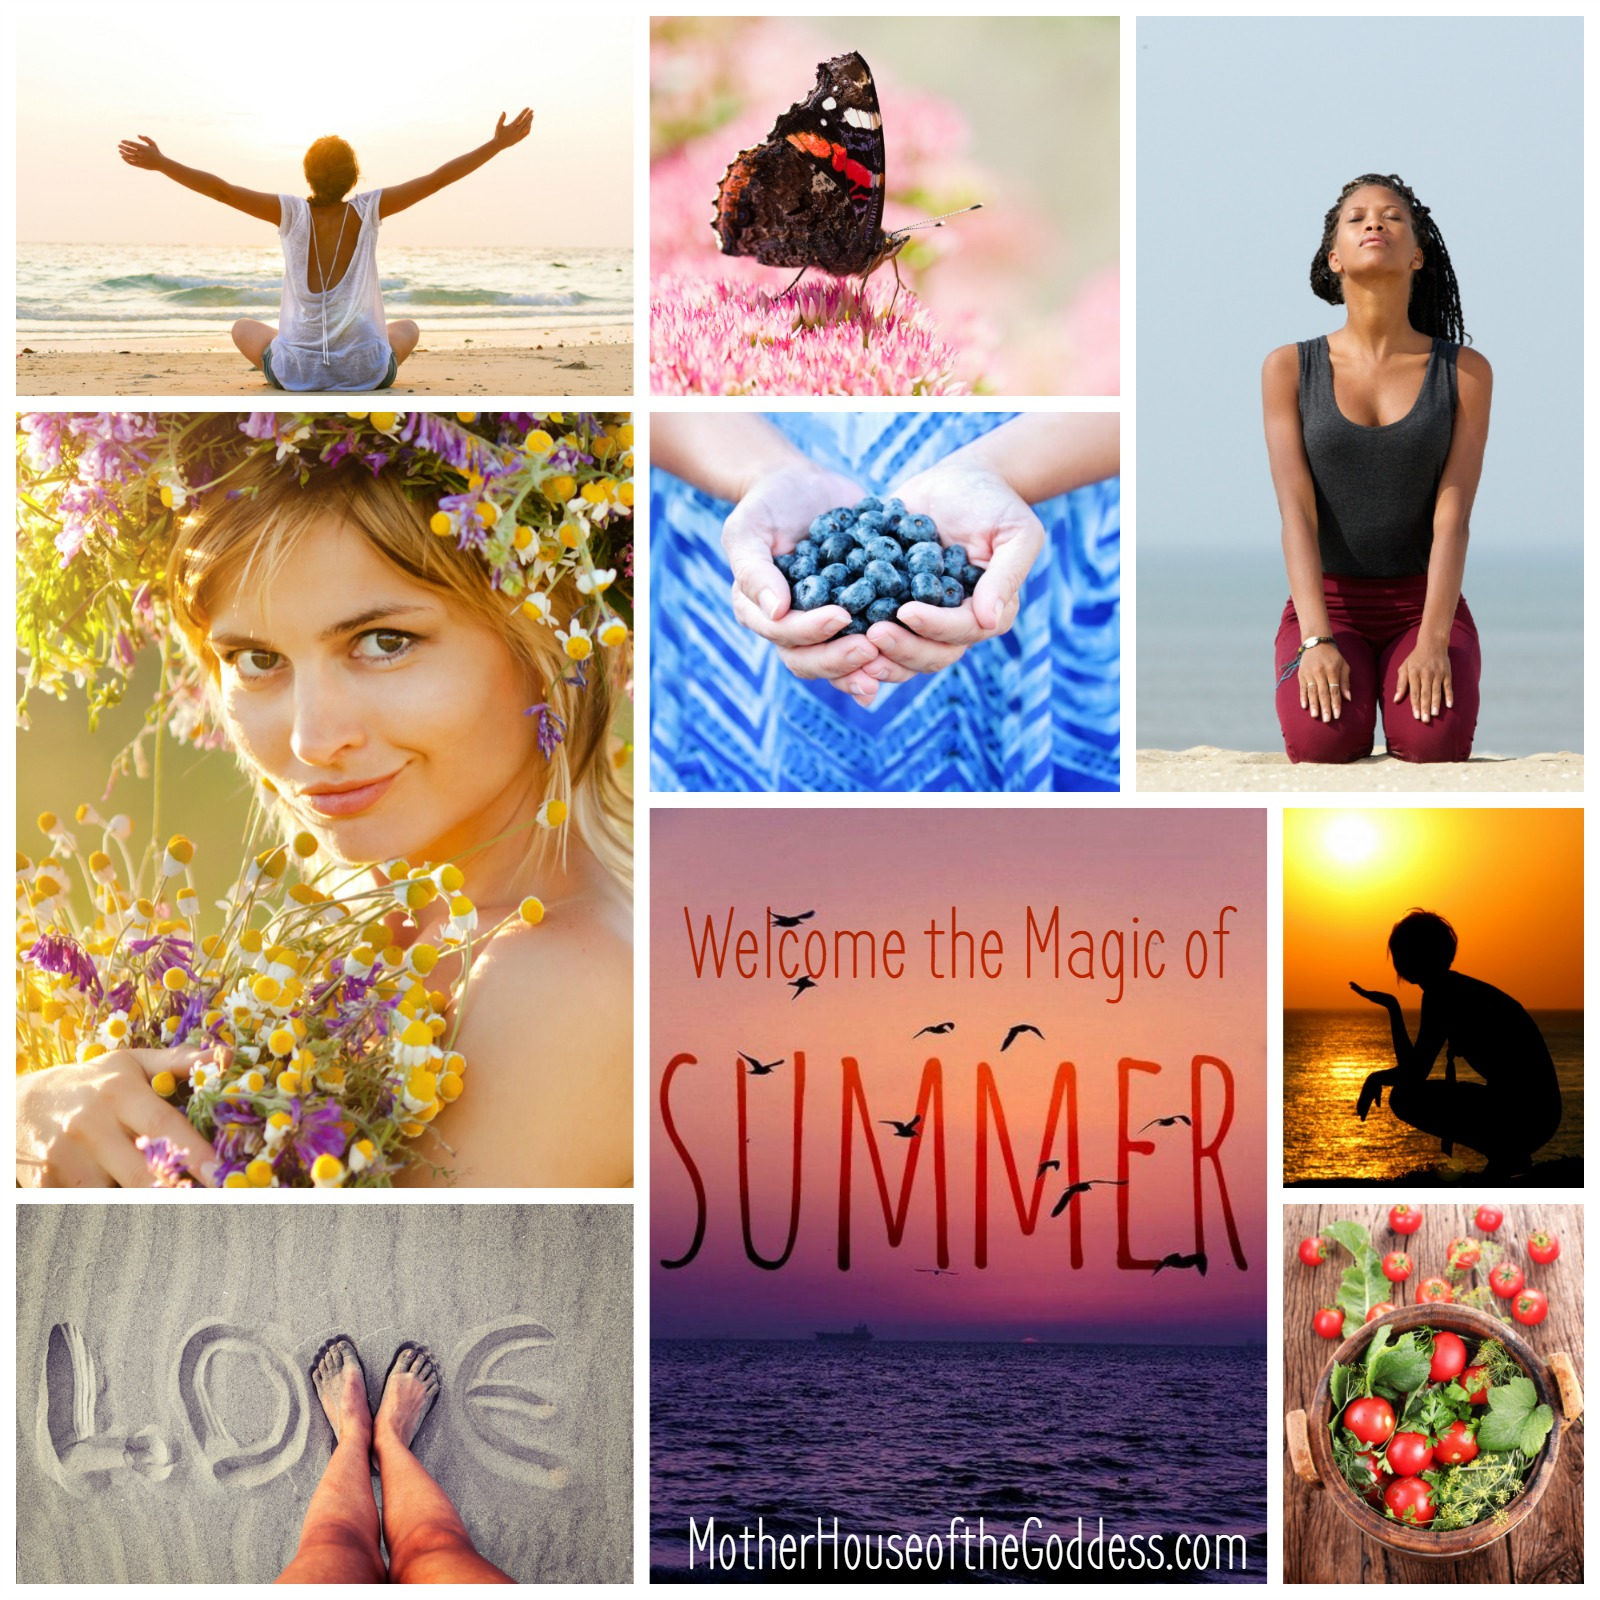 Ways to Welcome the Magic of Summer MotherHouse of the Goddess